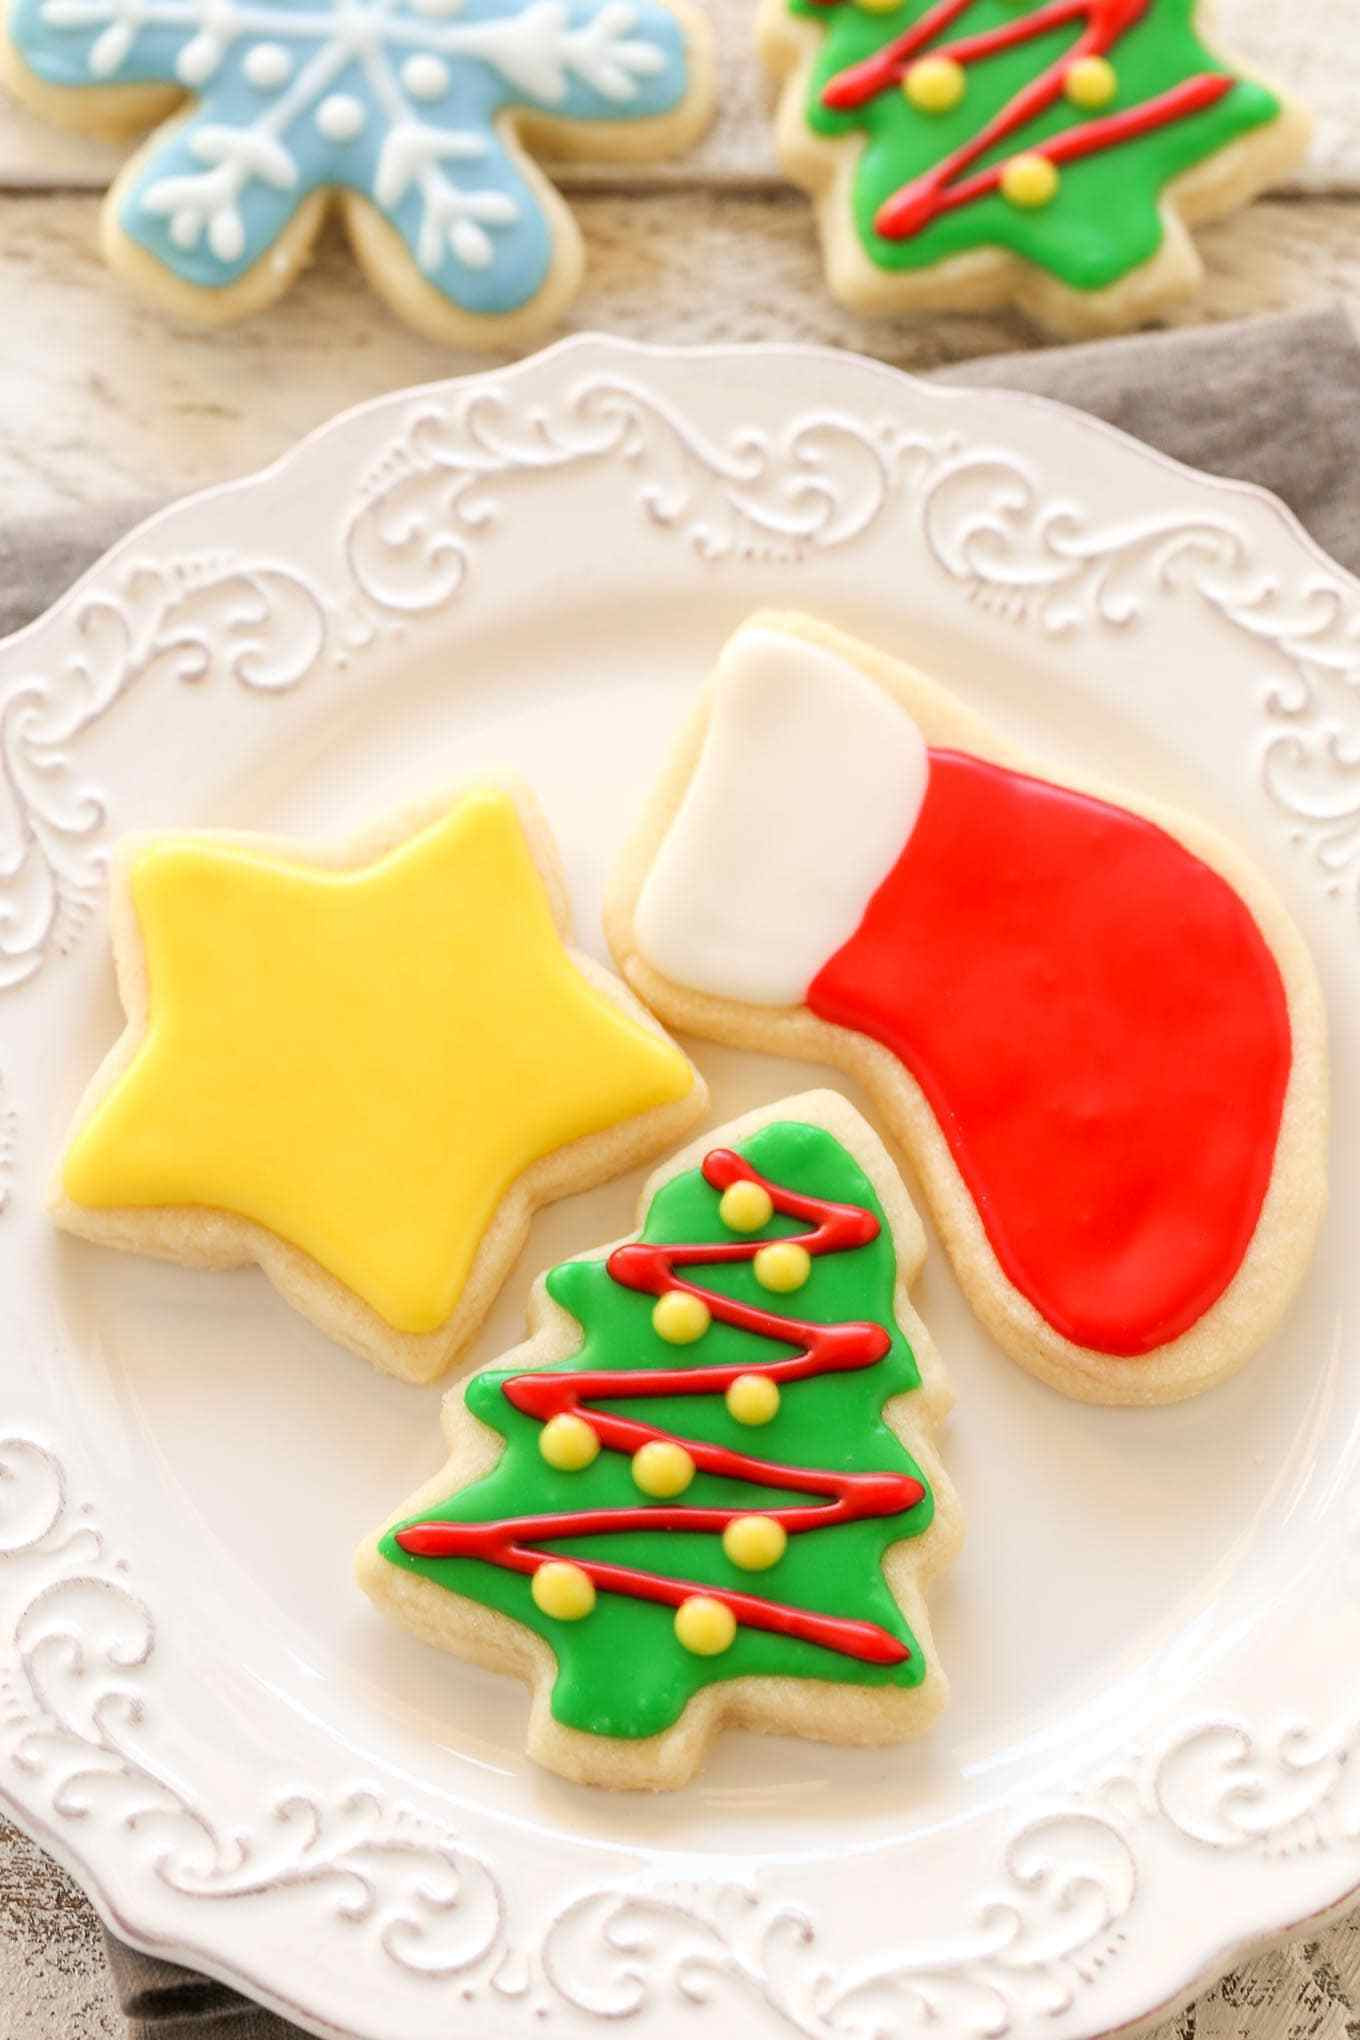 Christmas Cut Out Sugar Cookies Recipes  Soft Christmas Cut Out Sugar Cookies Live Well Bake ten